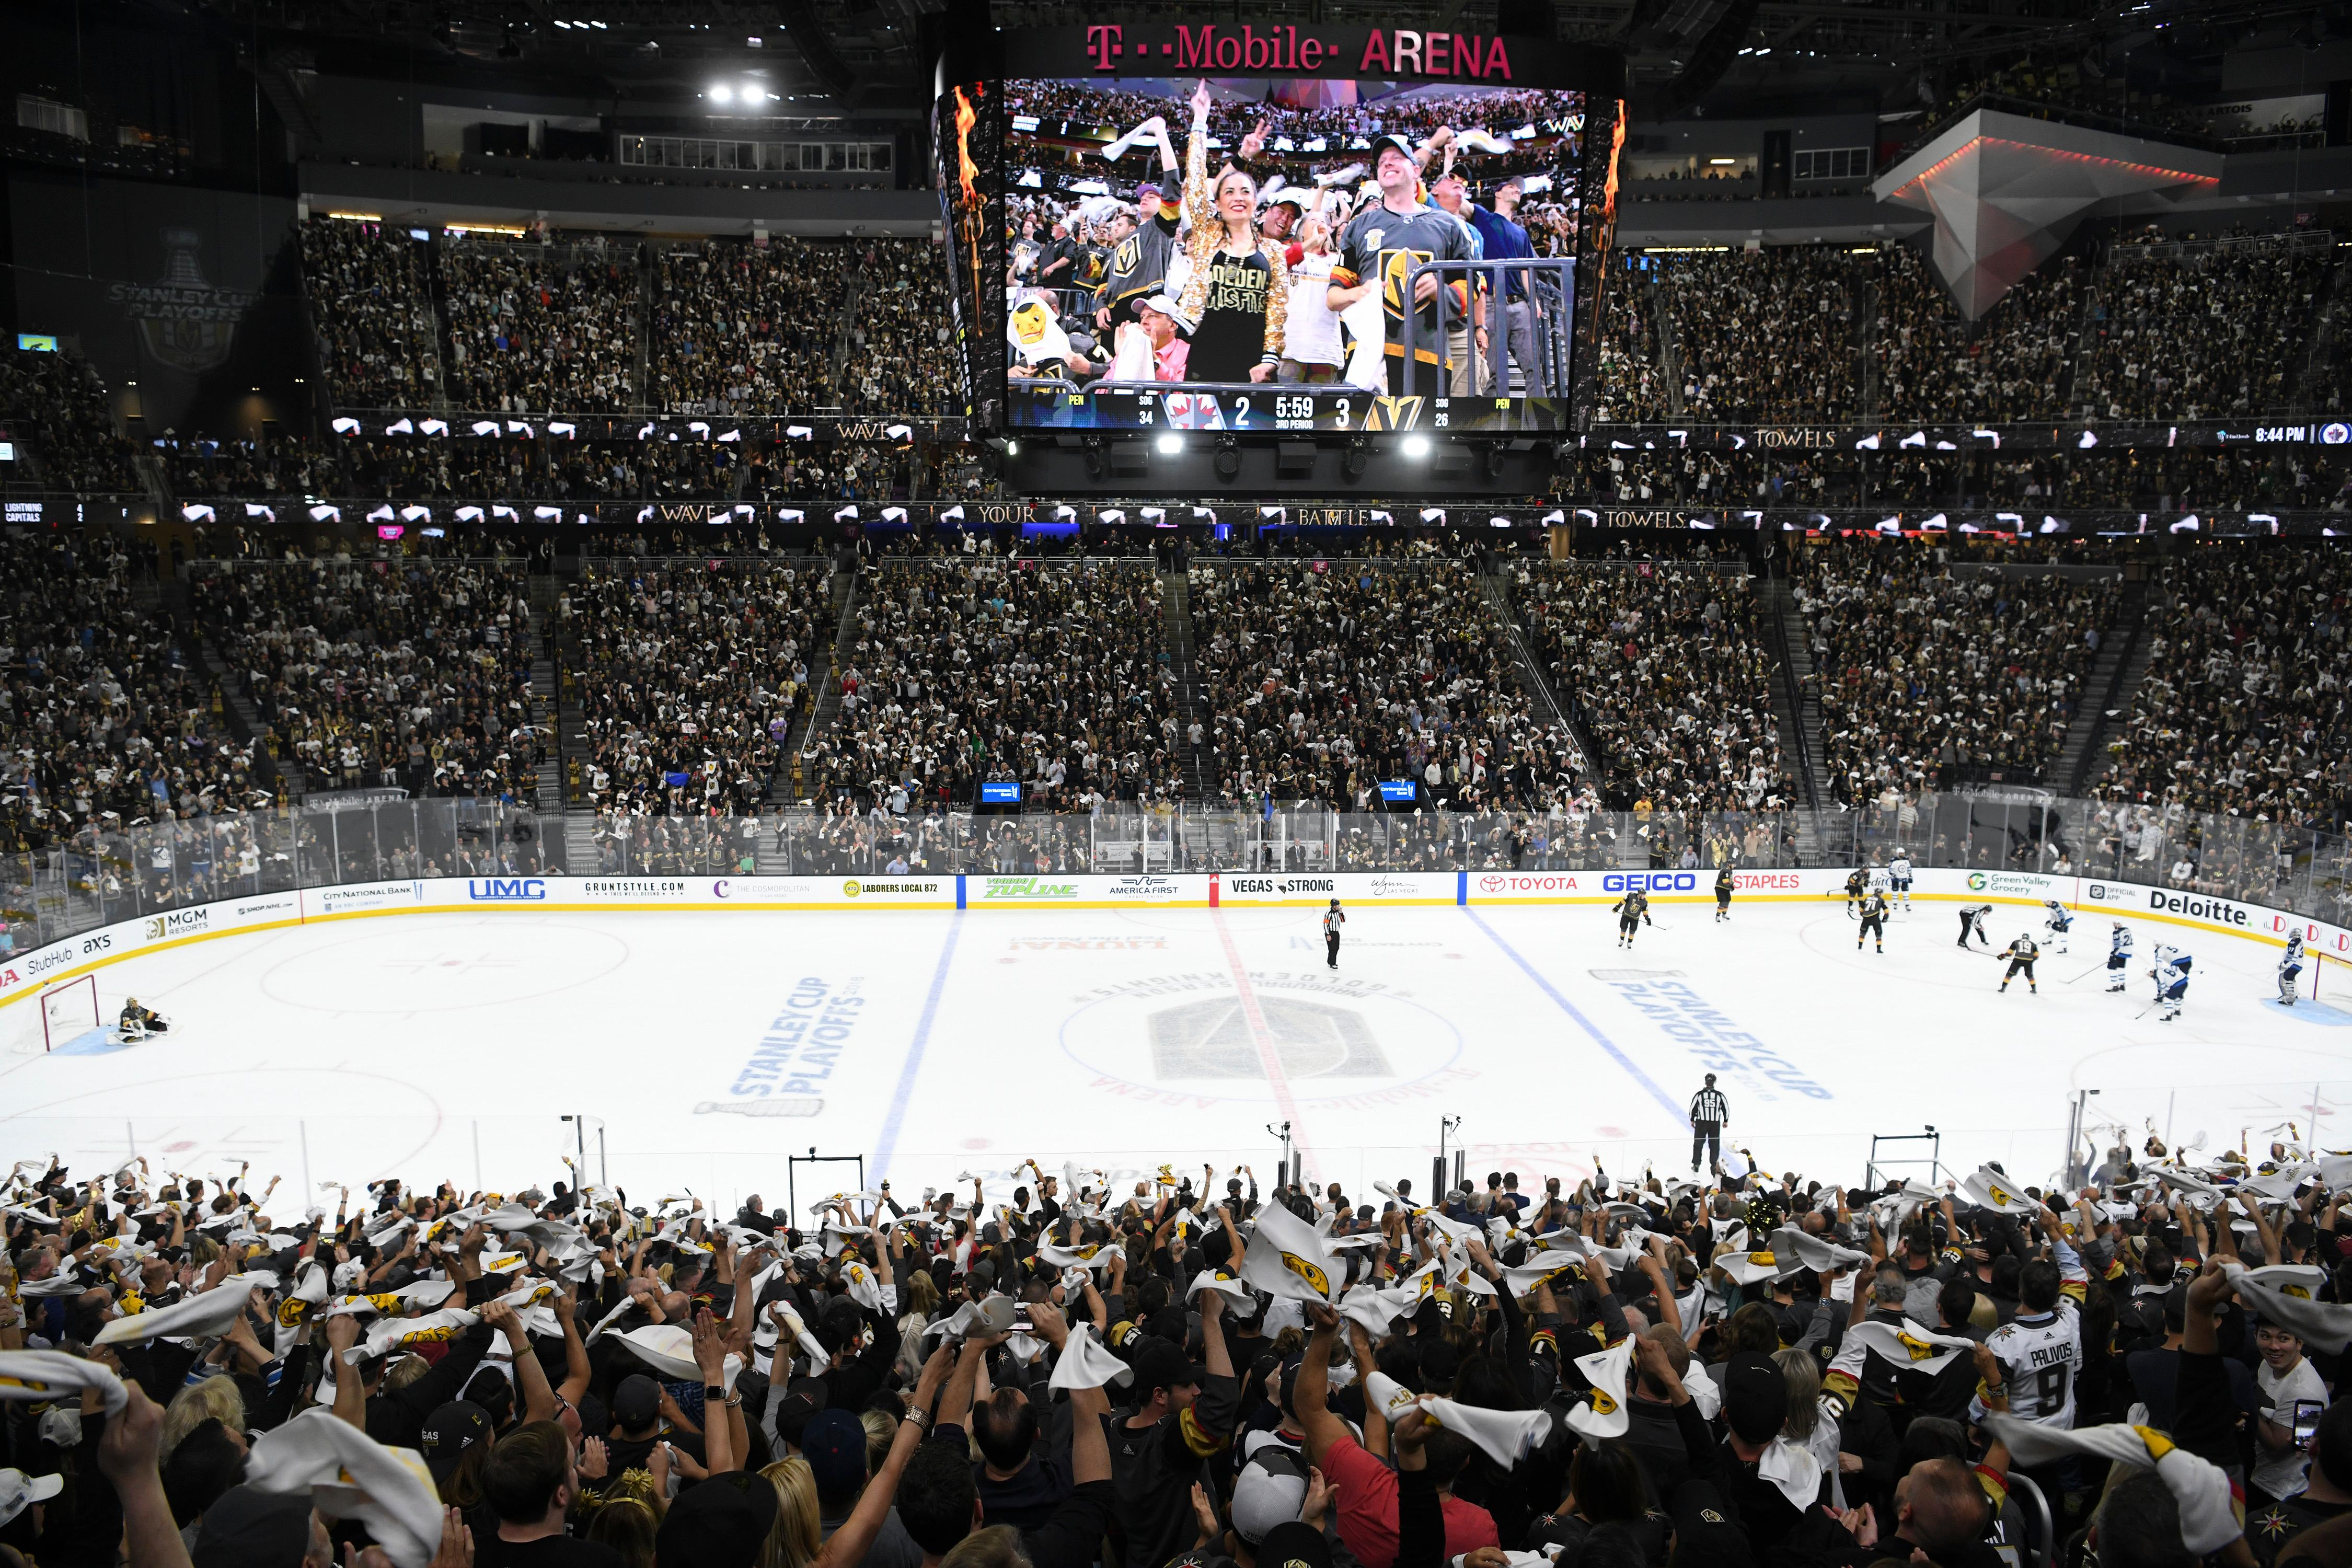 Vegas Golden Knights fans wave towels during Game 3 of their NHL hockey Western Conference Final game against the Winnipeg Jets Wednesday, May 16, 2018, at T-Mobile Arena. The Golden Knights won 4-2 to take a 2-1 lead in the series. CREDIT: Sam Morris/Las Vegas News Bureau